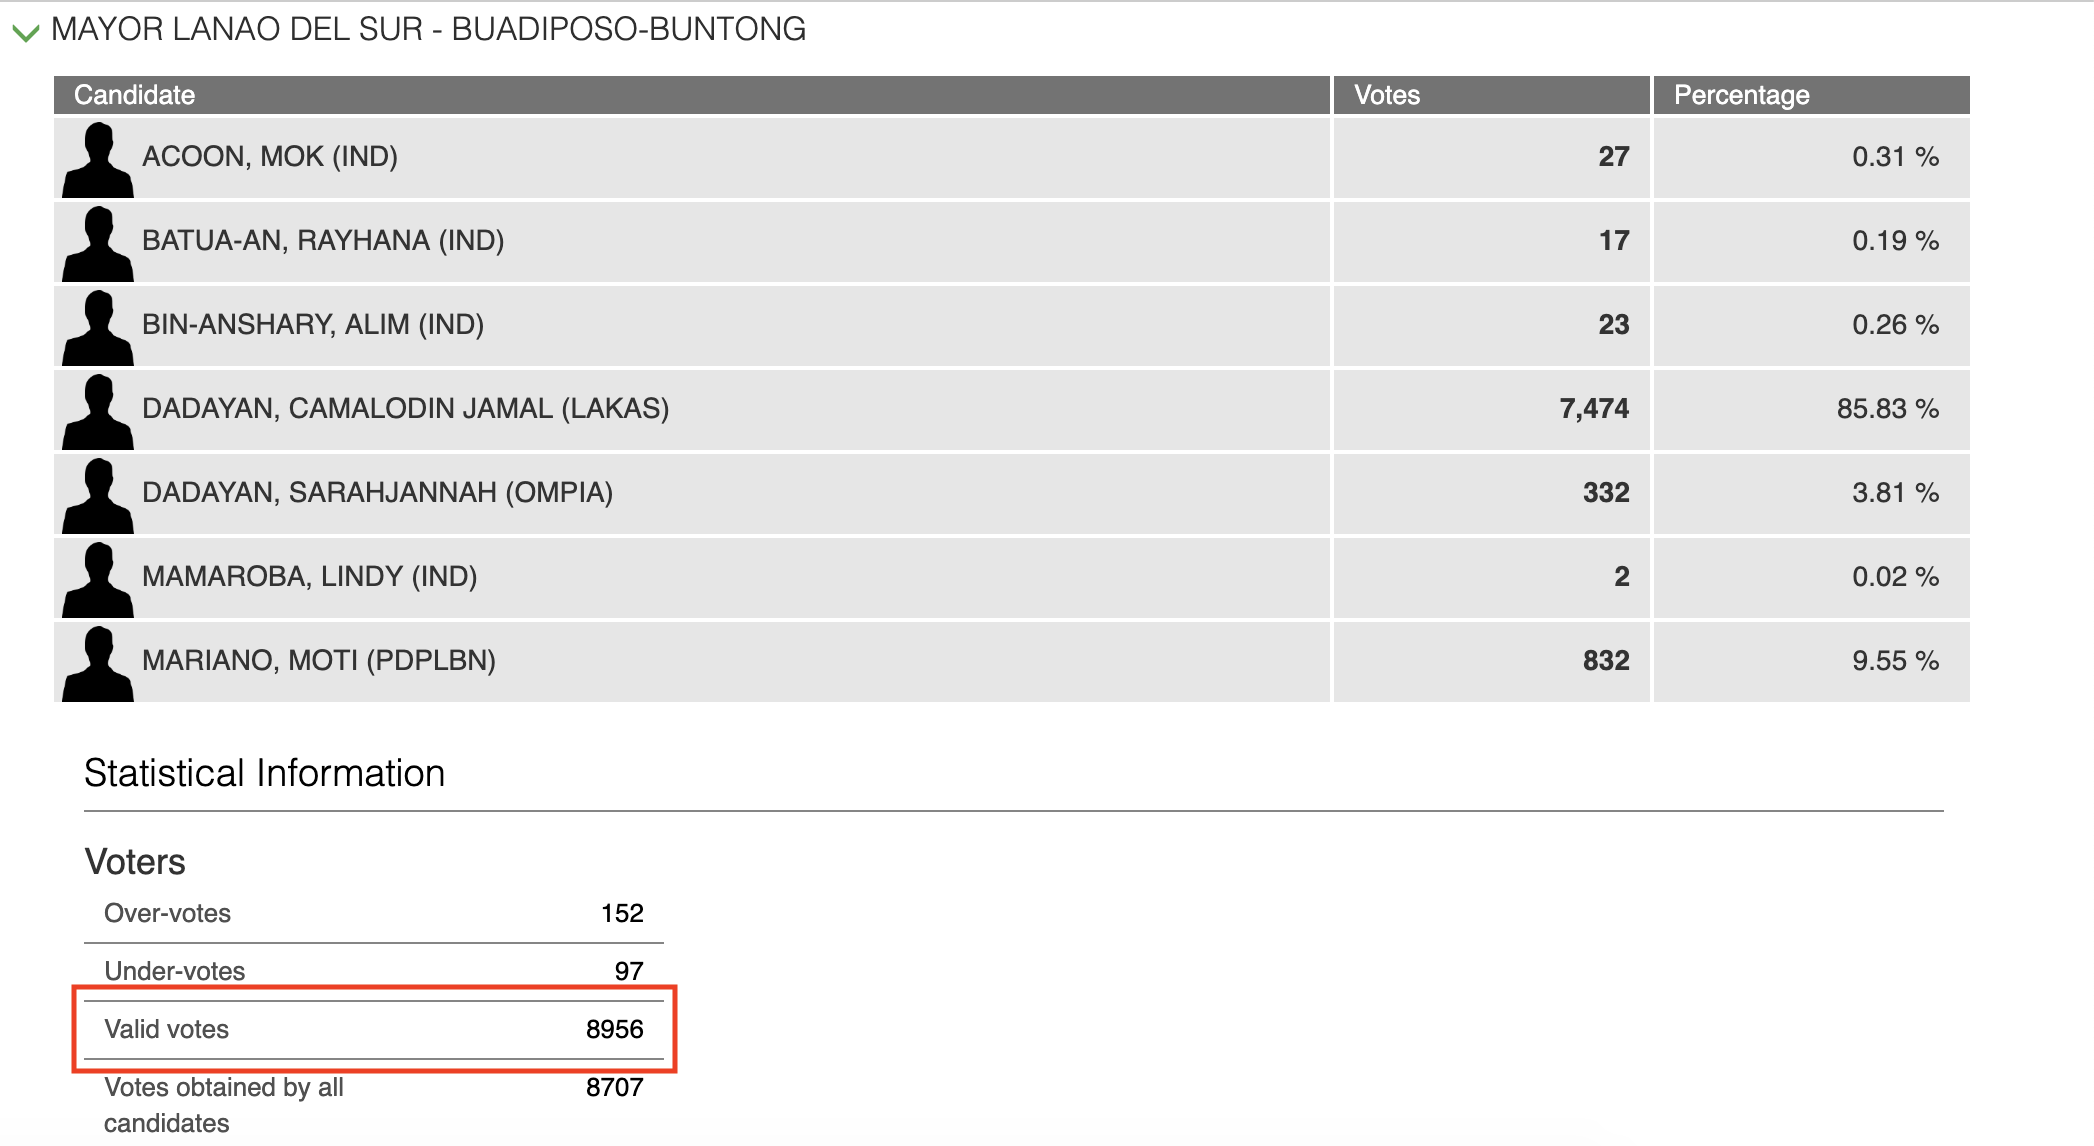 Screenshot of Comelec Central Server data for Buadiposo-Buntong, Lanao del Sur